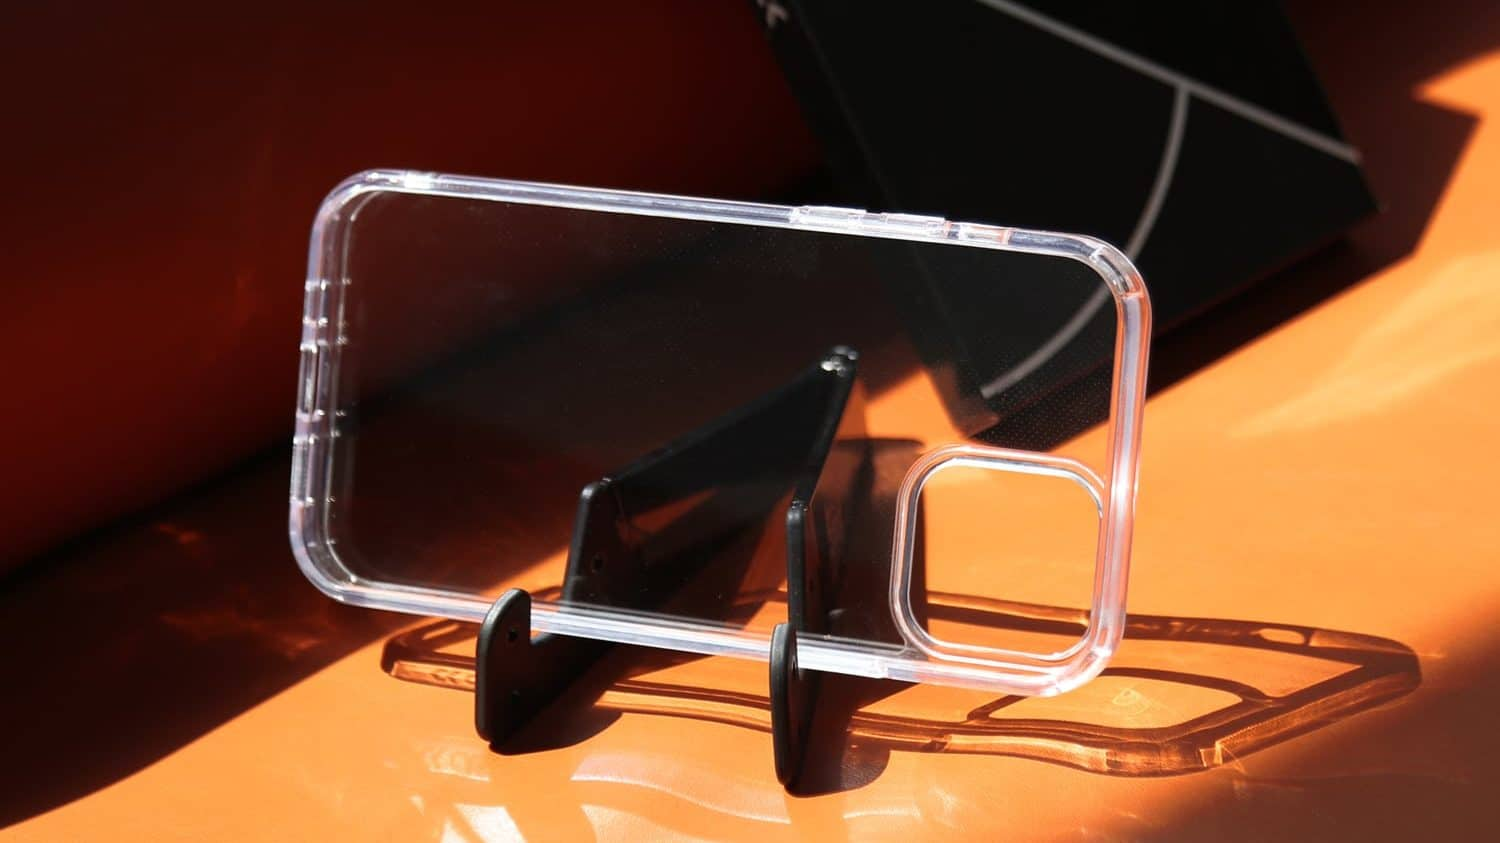 casekoo phone holder